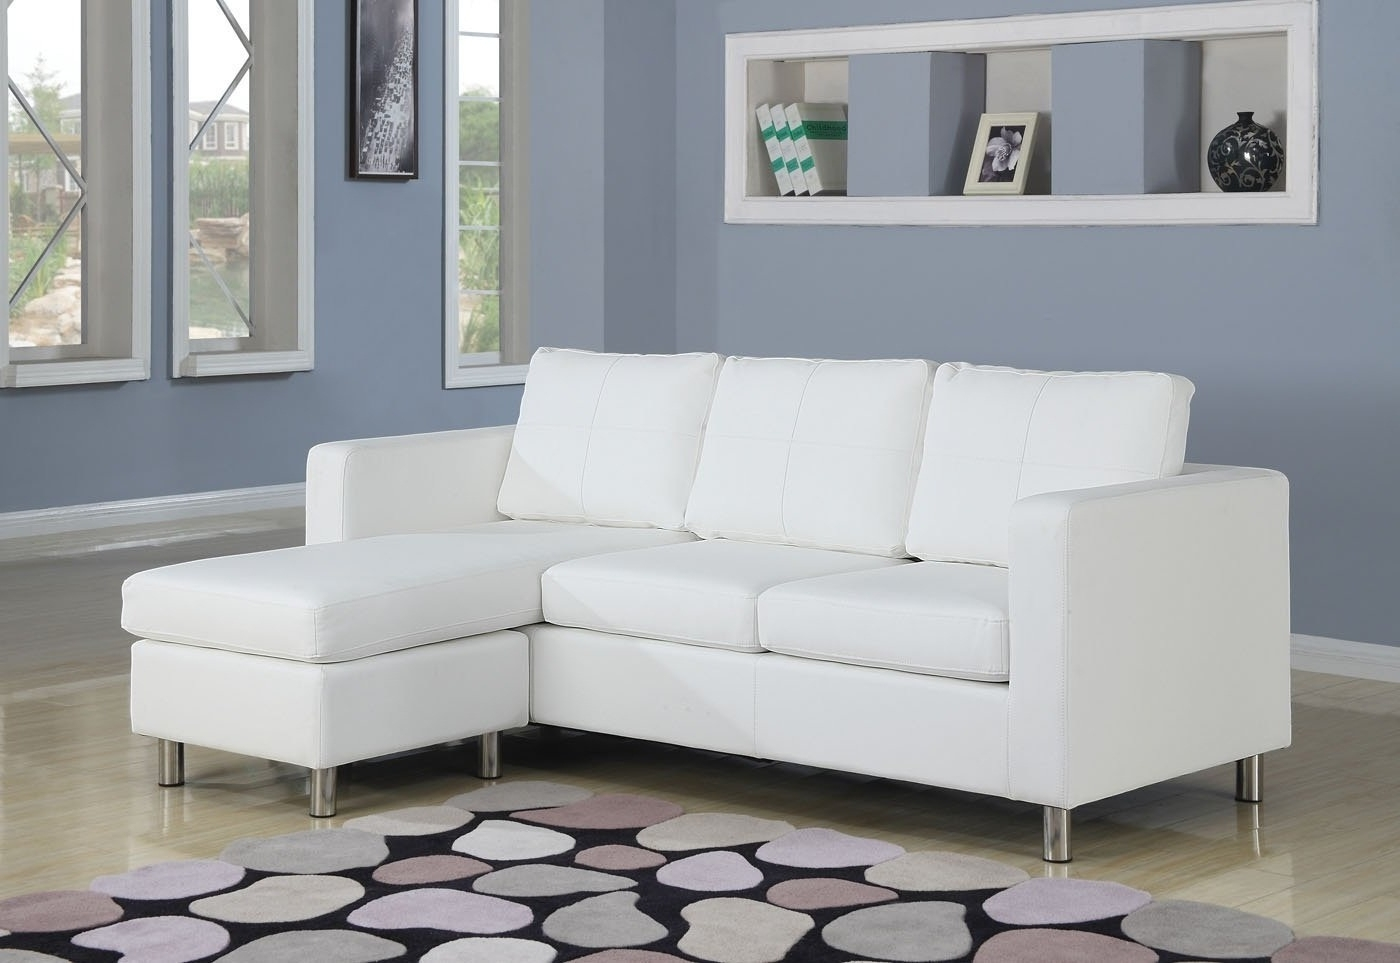 Well Known Tiny Sofas With Best Small Sectional Sofa With Chaise 49 On Sofas And Couches (View 15 of 15)